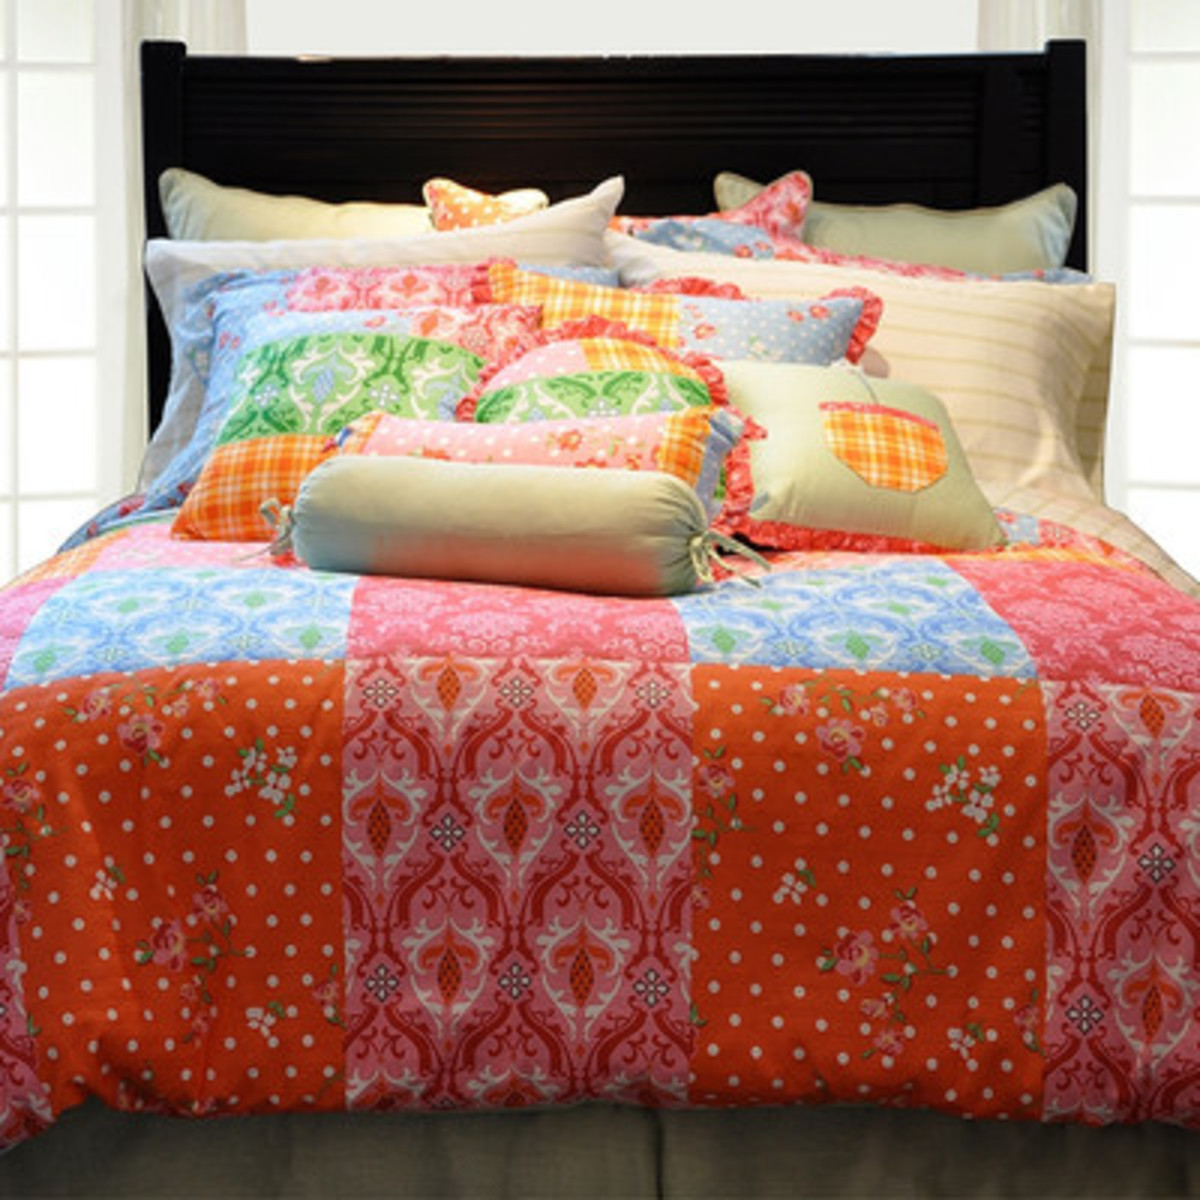 This colorful set adds boho chic to your Matryoshka themed bedroom